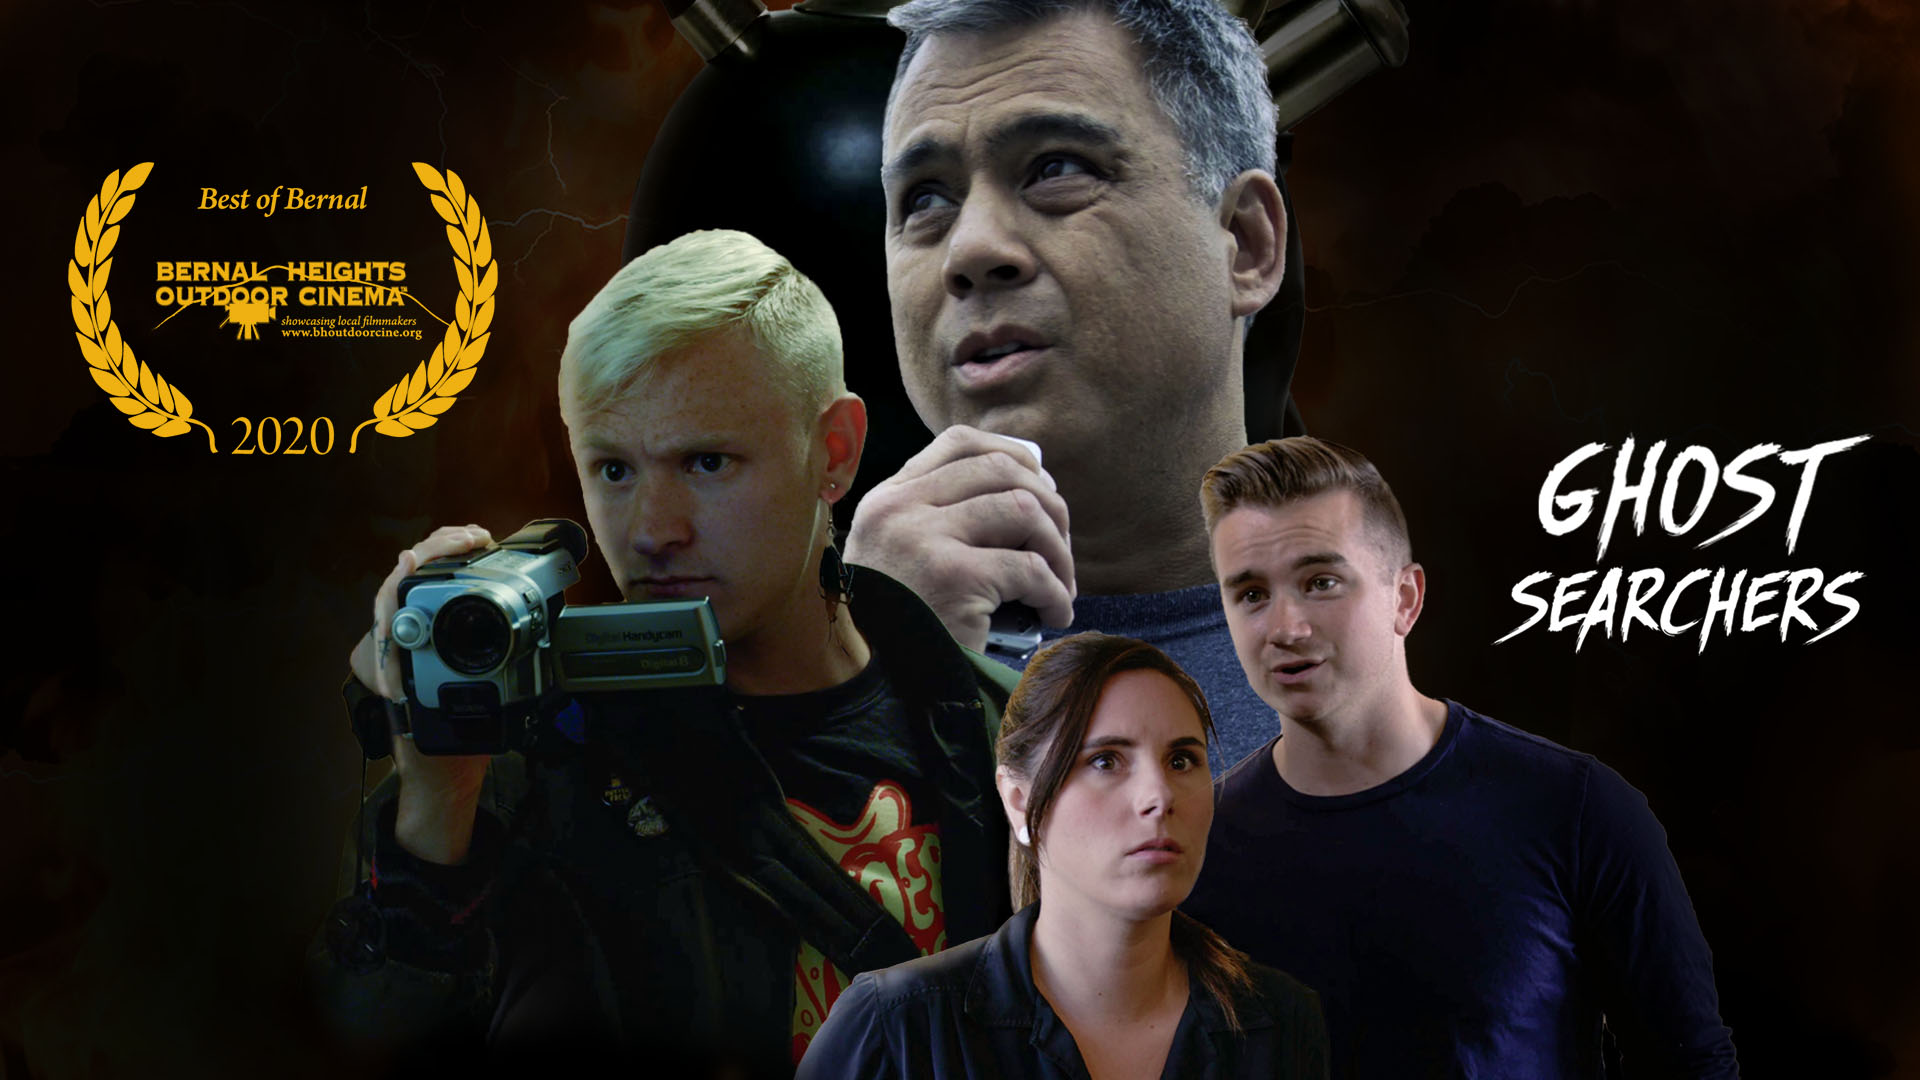 Ghost Searchers takes the Good Life Audience Award! 0